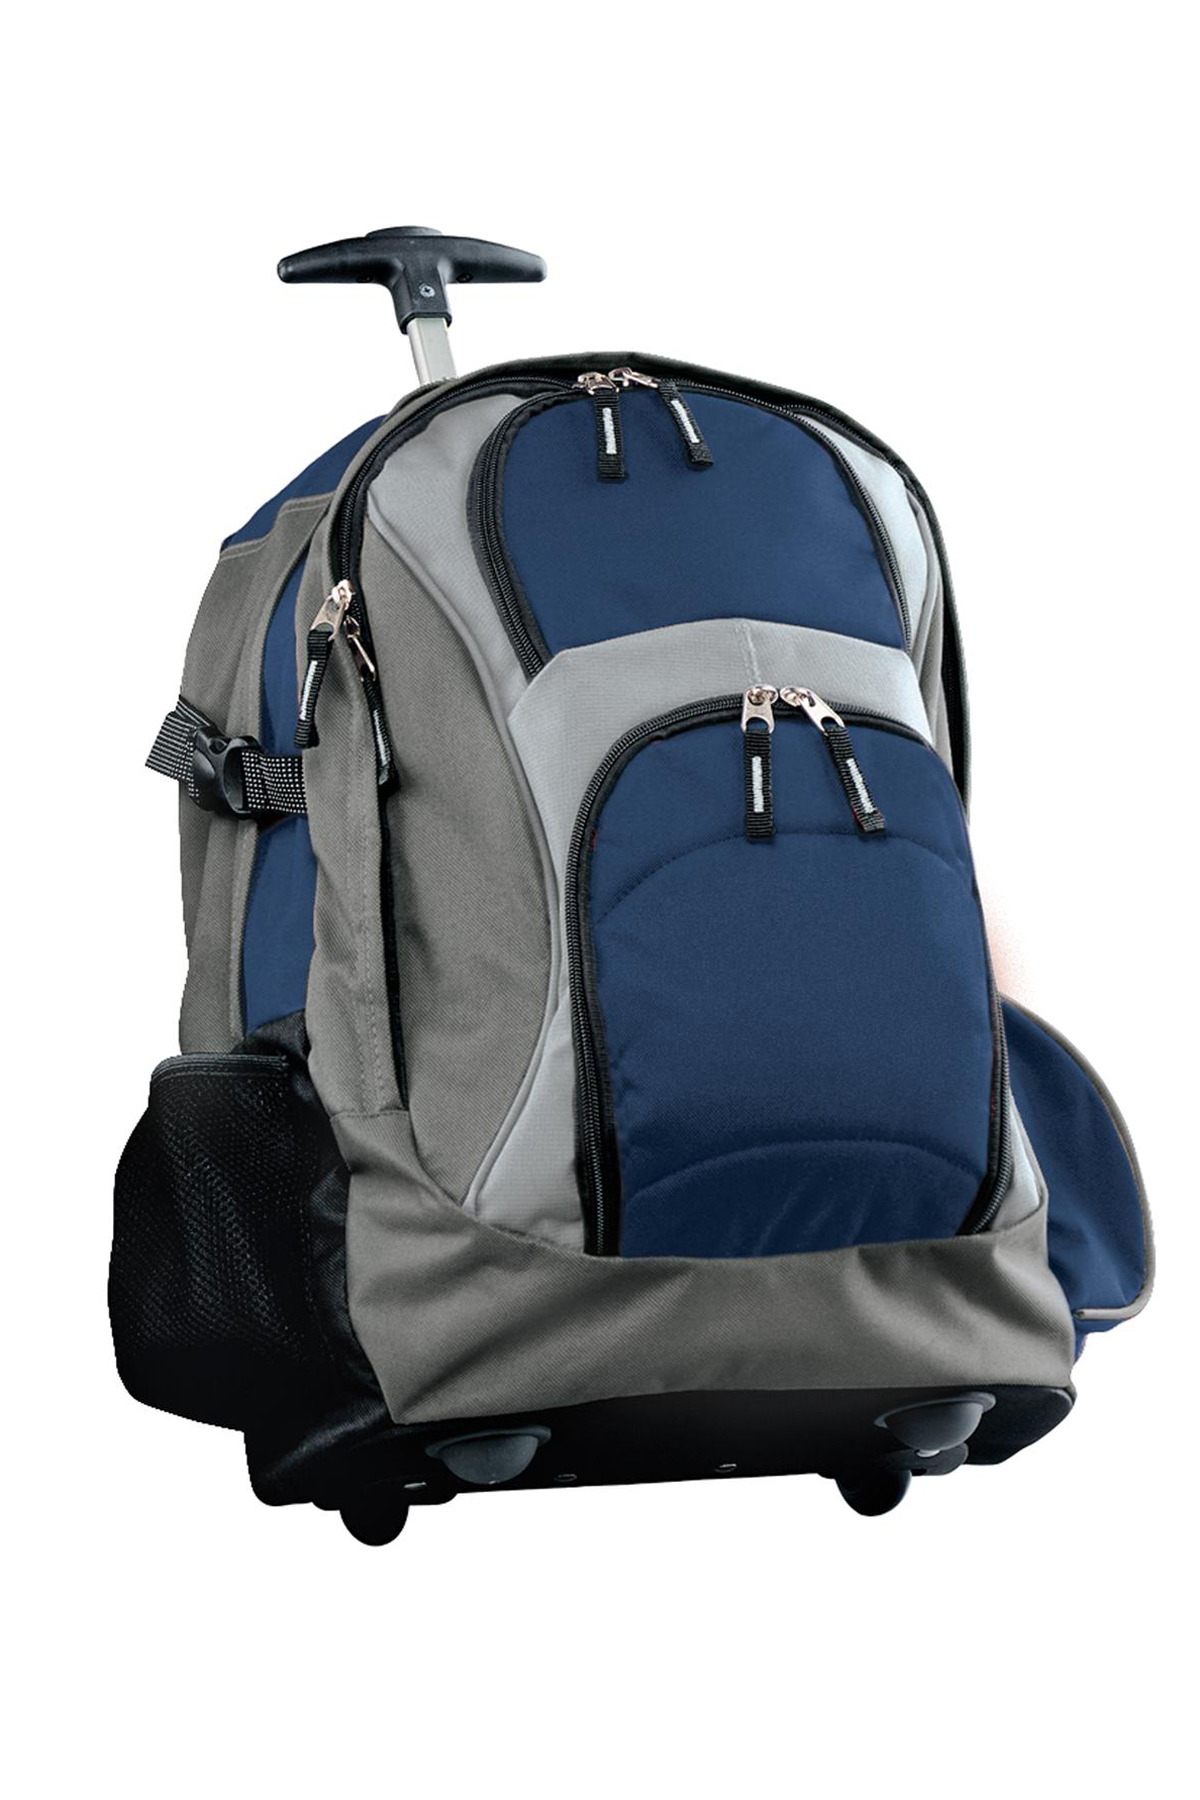 Bags-Travel-7